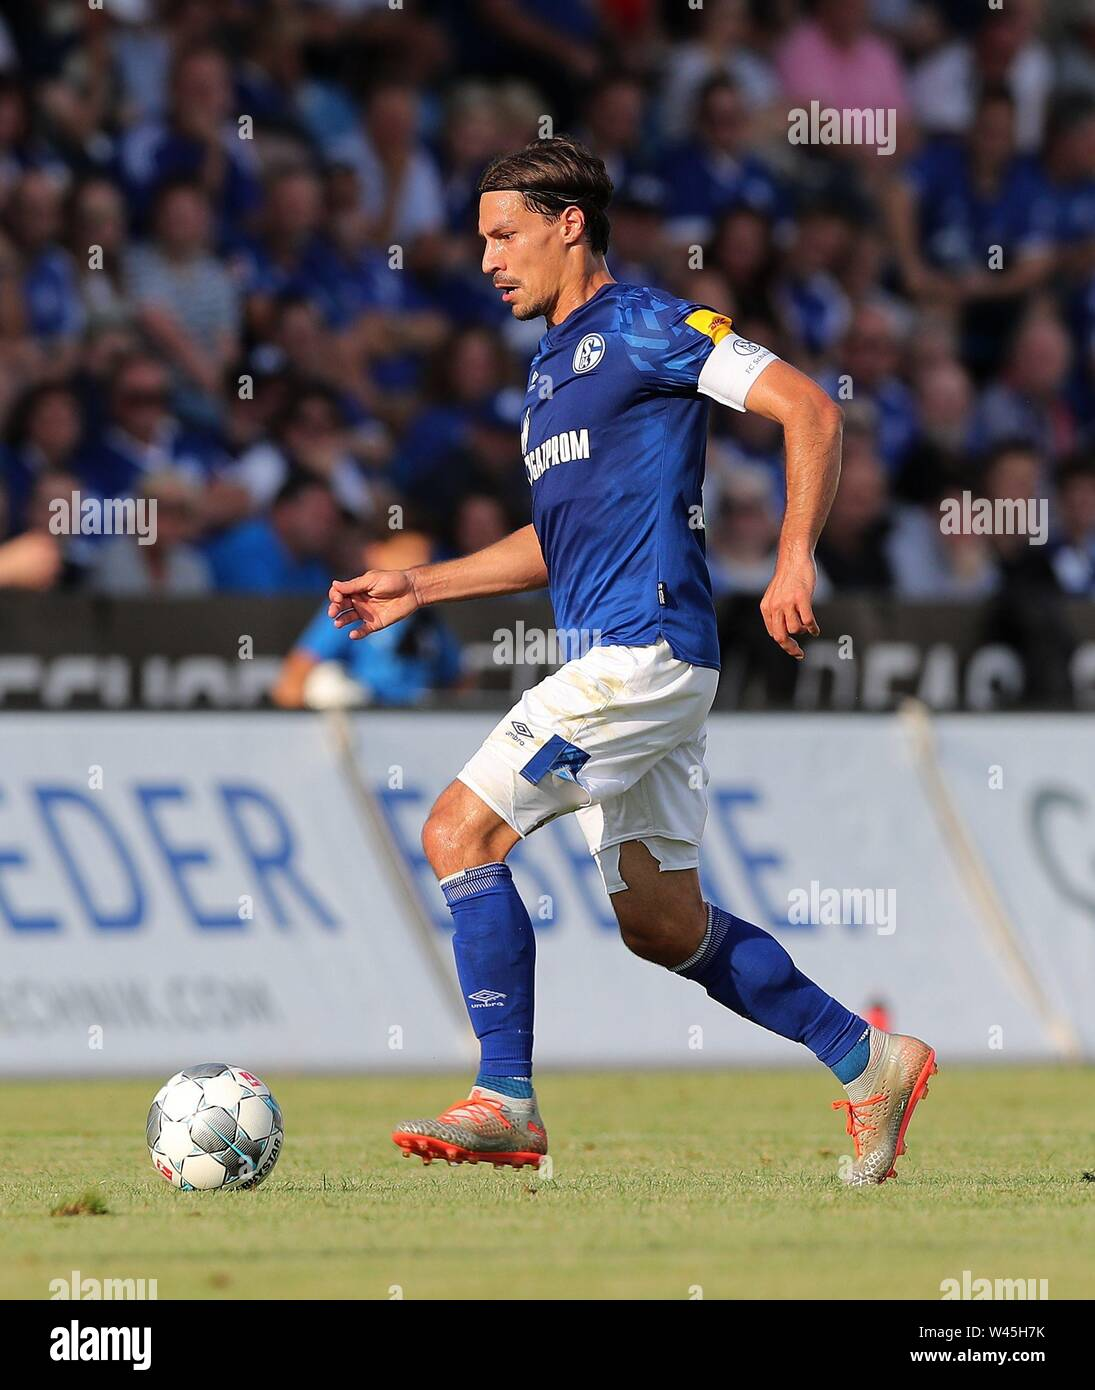 Lotte, Deutschland. 19th July, 2019. firo: 19.07.2019, football, 1.Bundesliga, season 2019/2020, friendly match, FC Schalke 04 - Norwich City Benjamin STAMBOULI, Schalke, single action | usage worldwide Credit: dpa/Alamy Live News - Stock Image